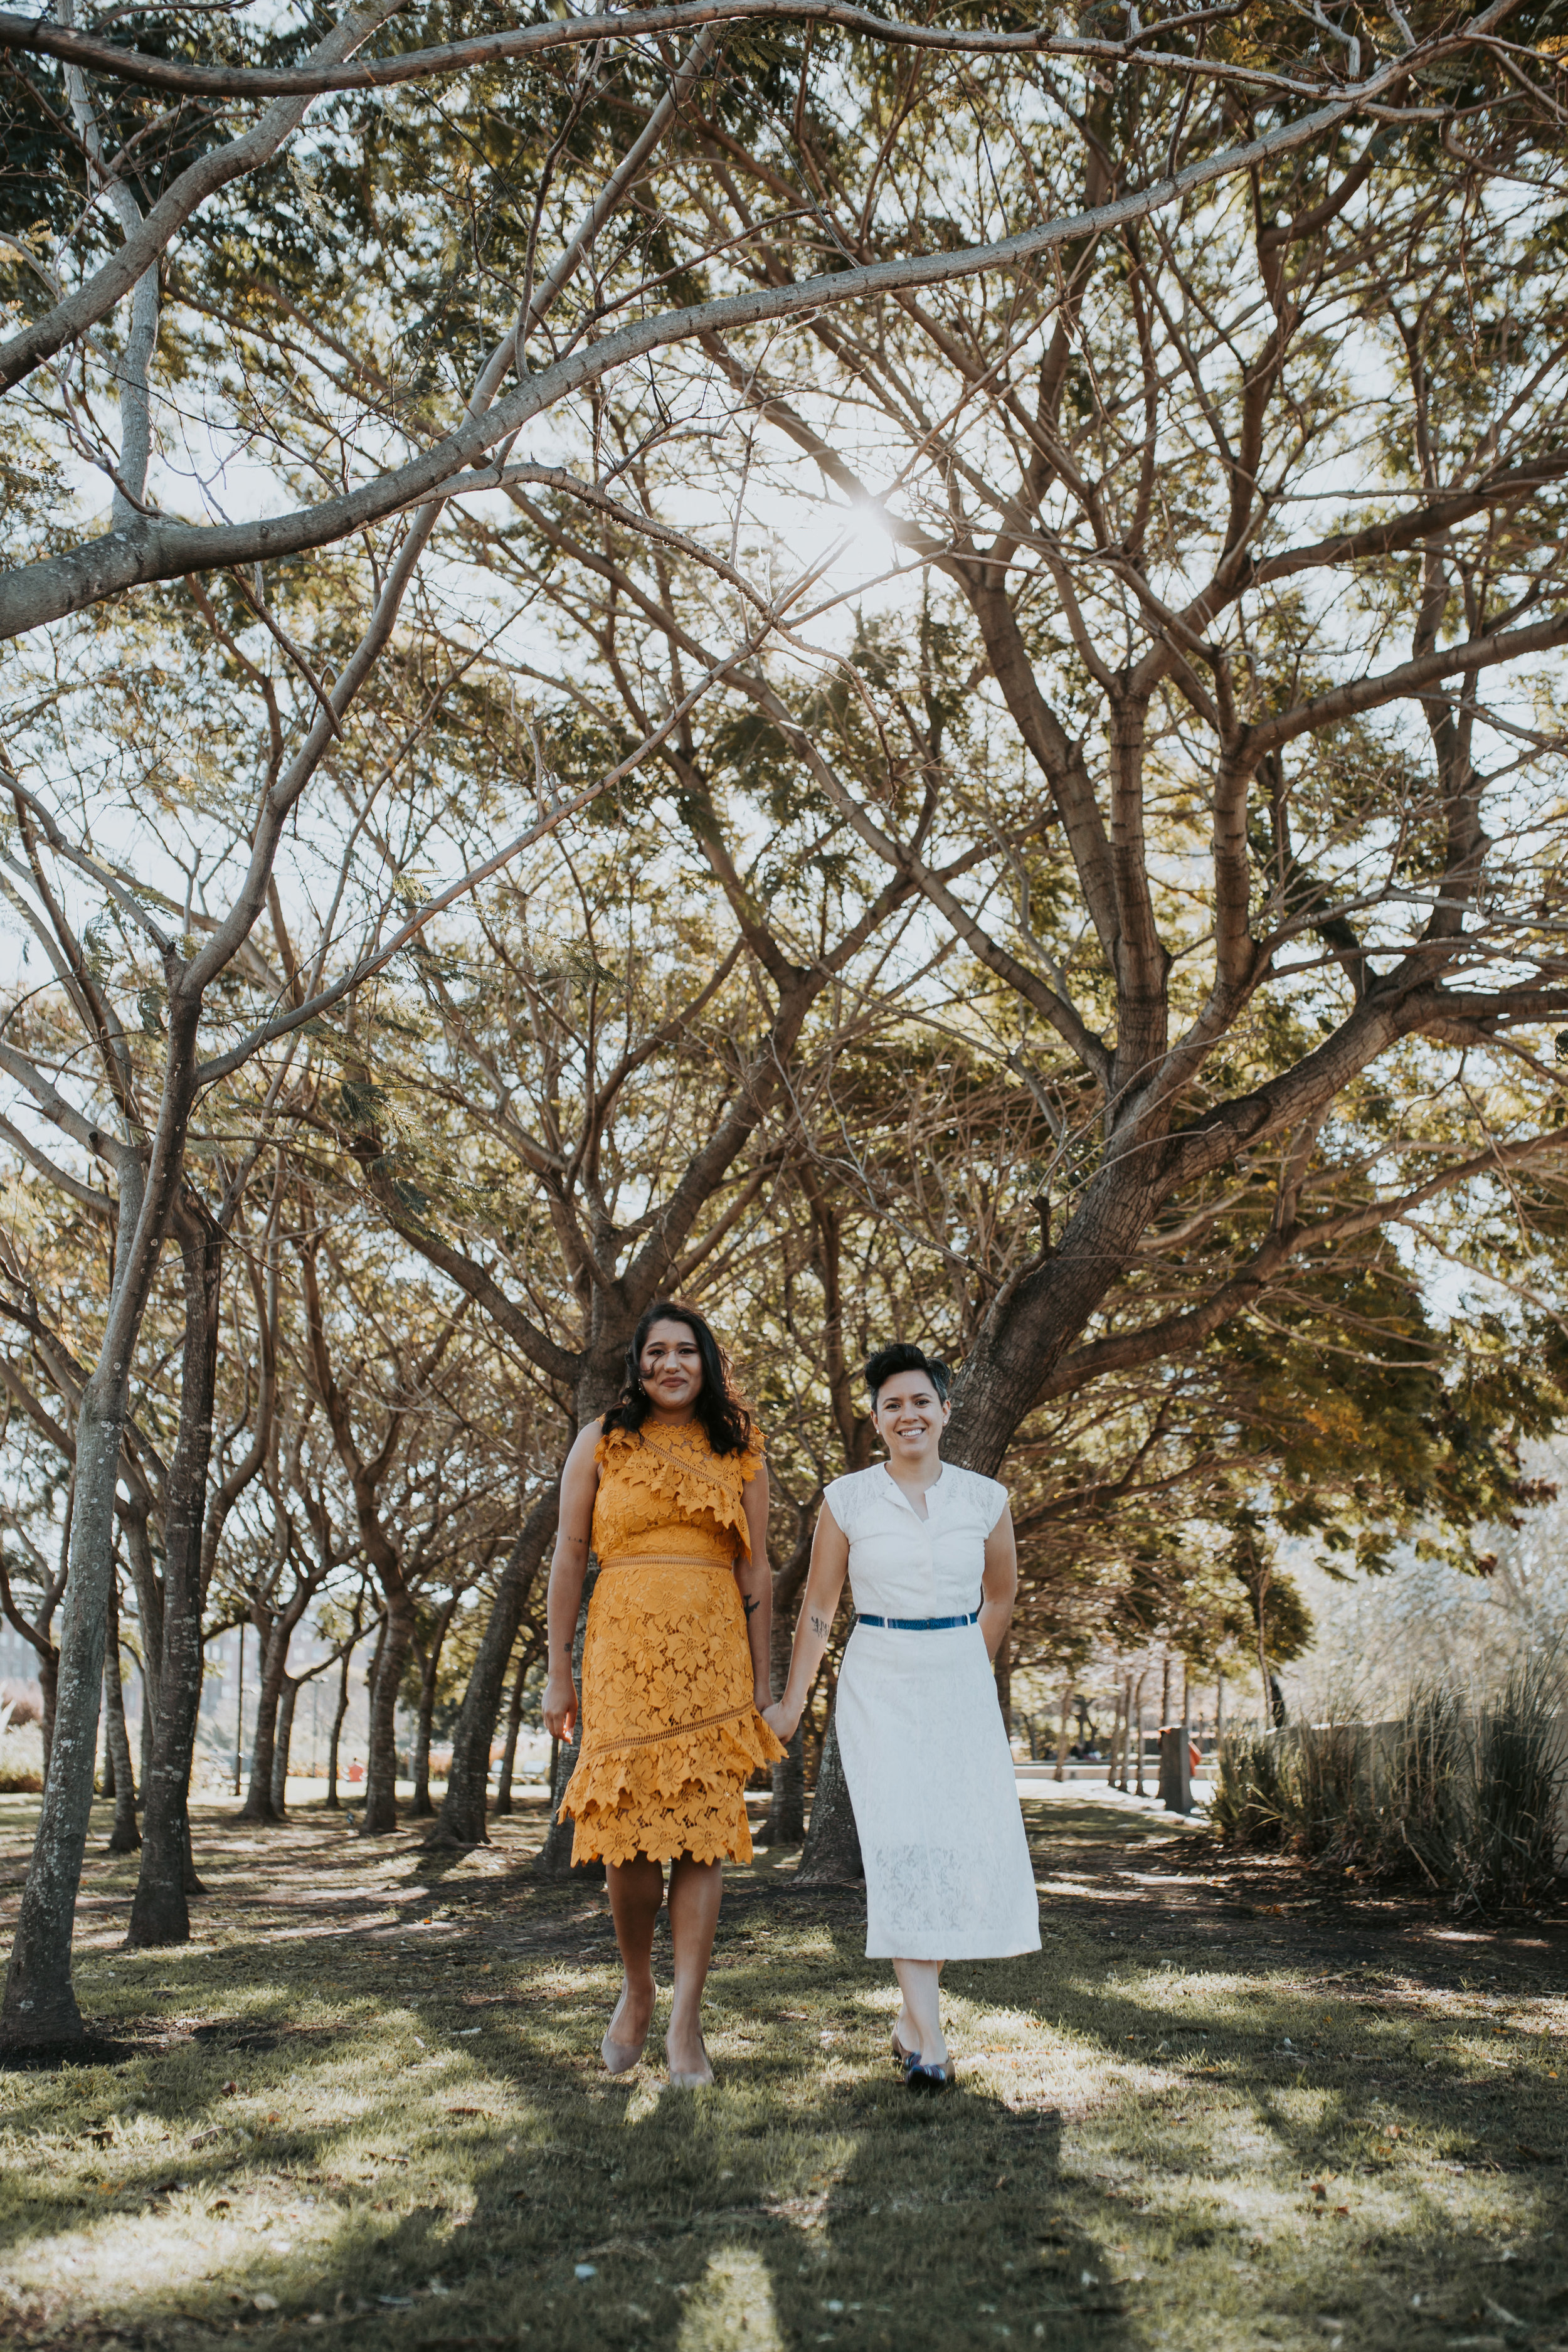 Shannen&Nadia_Buenos Aires_19June2019_(c)FeliciaLimPhotography_6.jpg